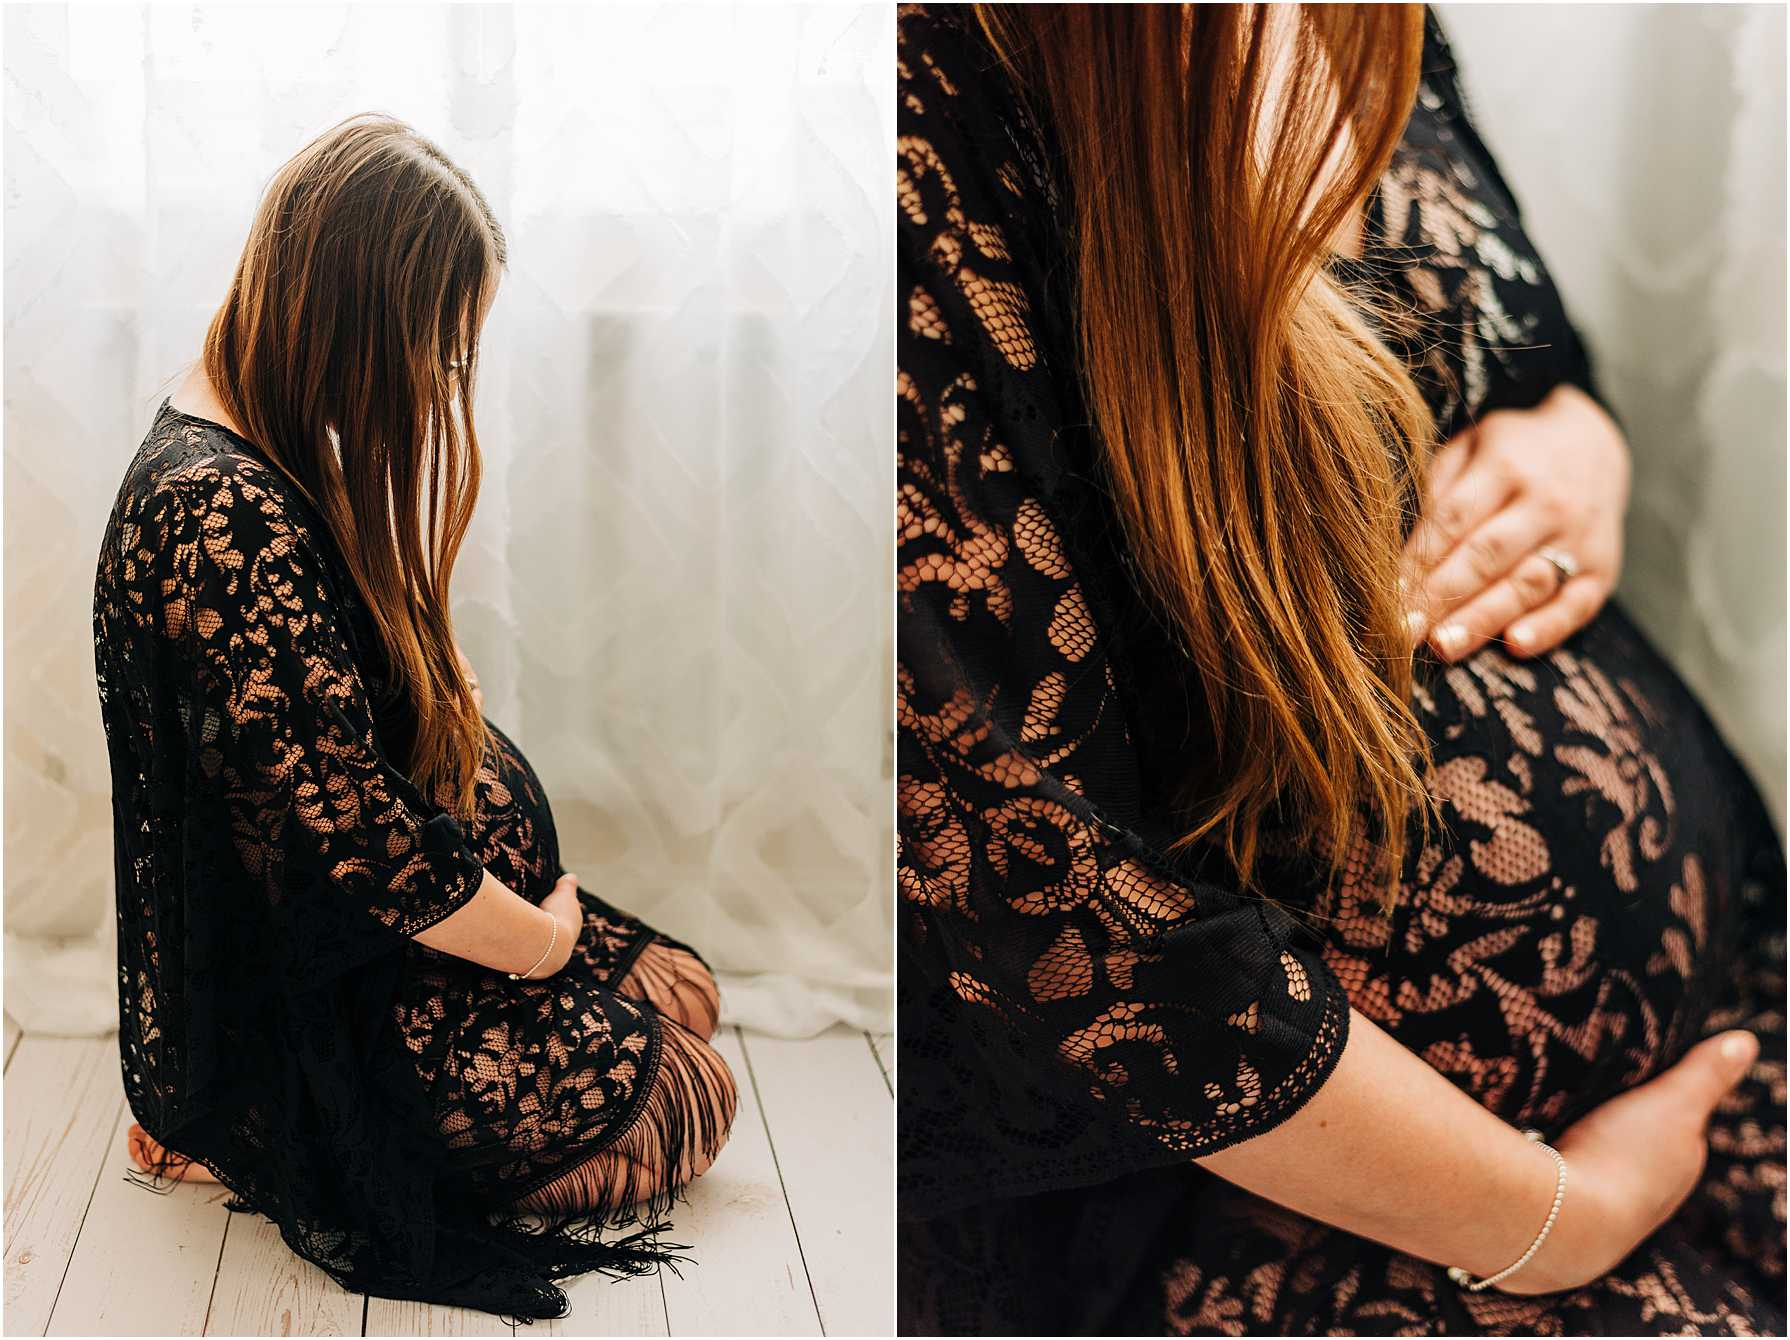 pregnant lady sitting down holding her belly wearing a black lacy dress